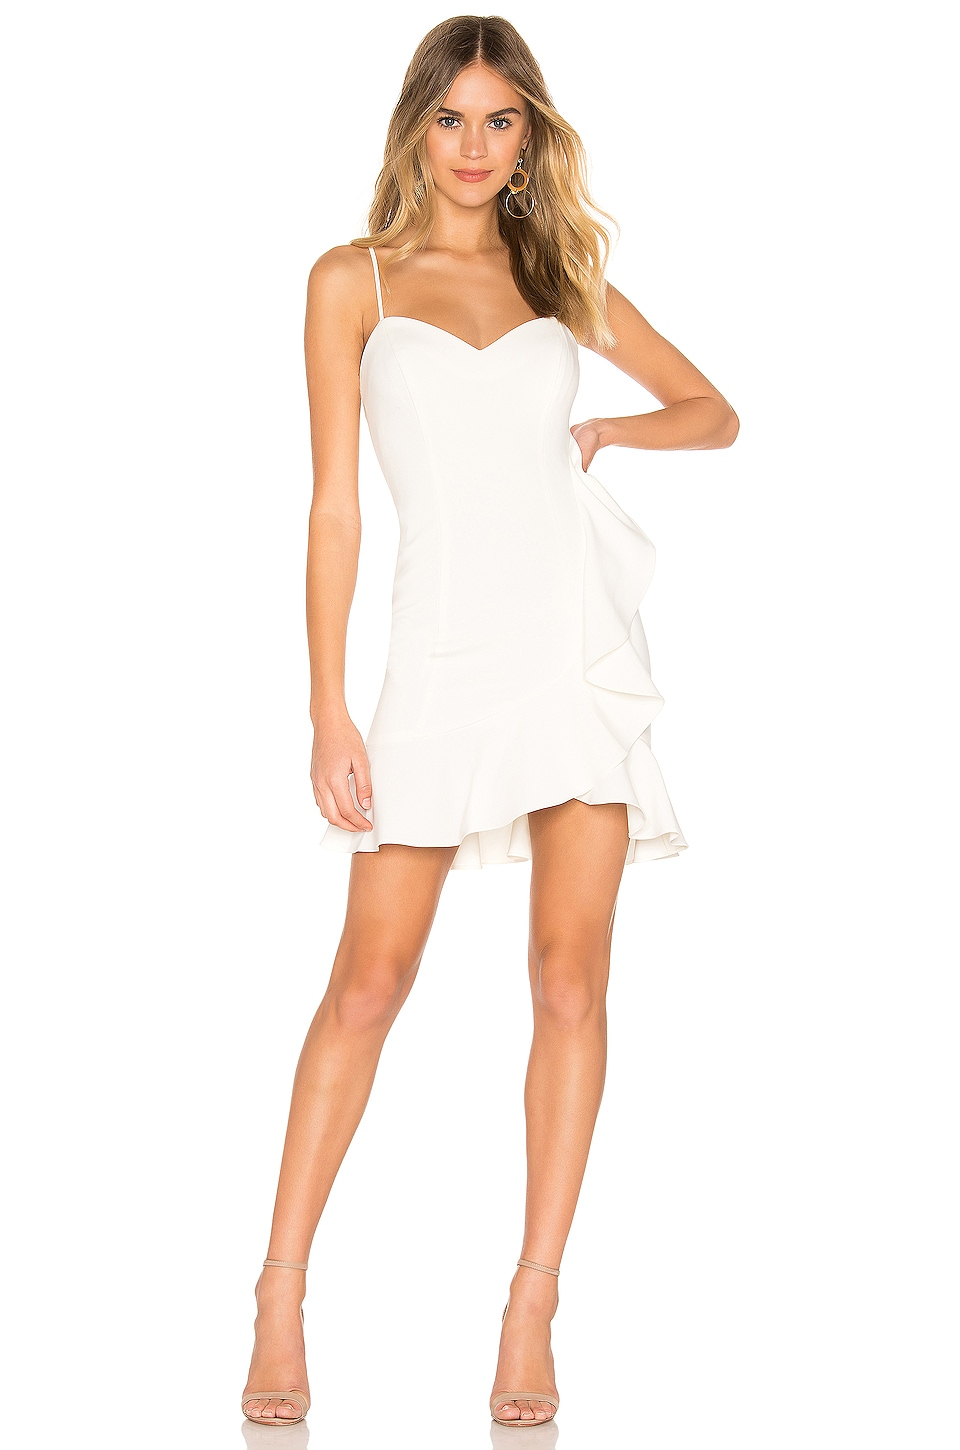 LIKELY Laverna Dress in White